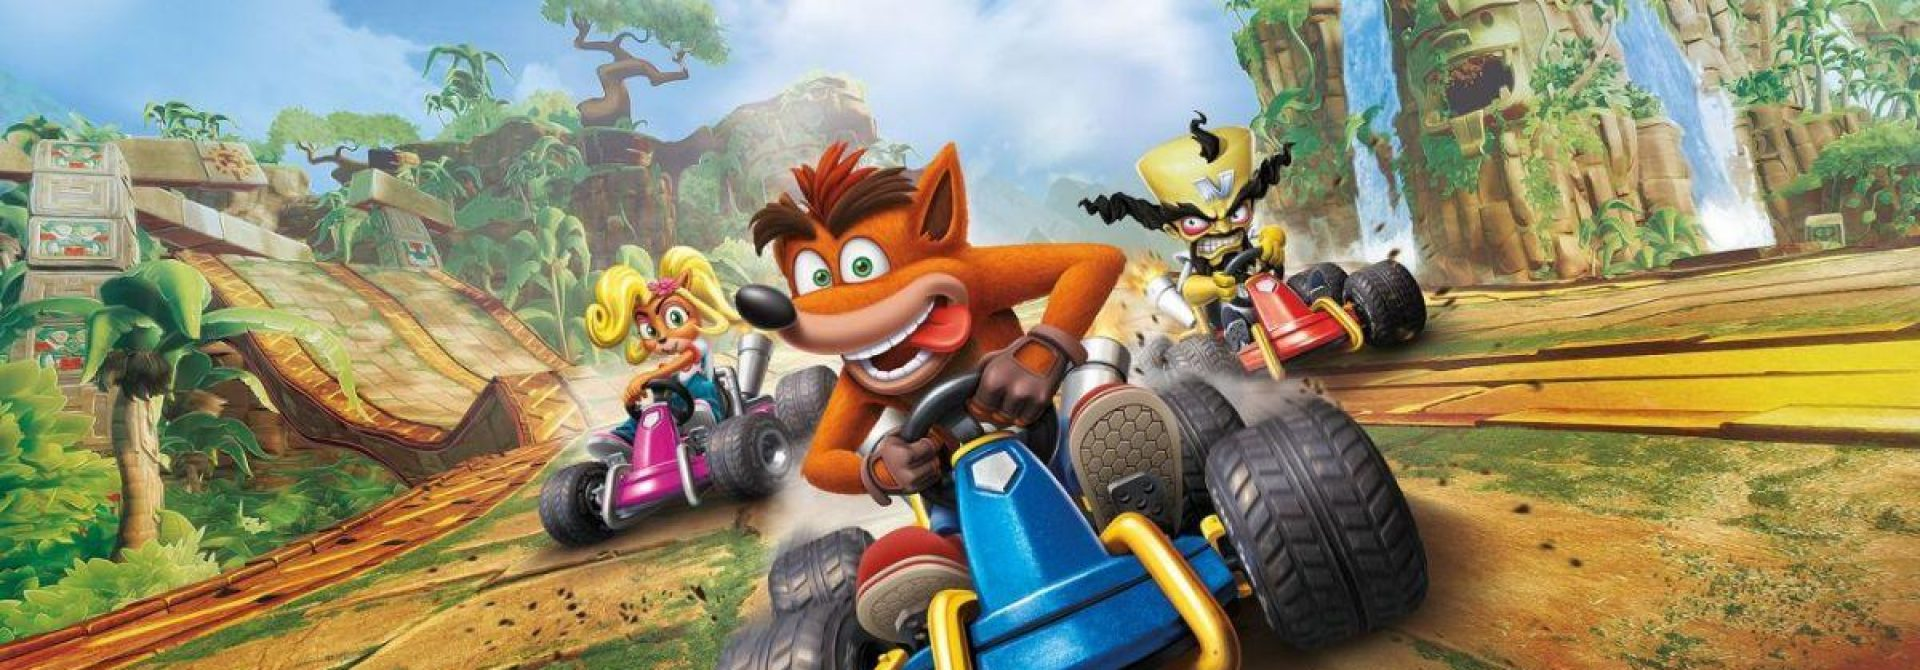 Crash Team Racing Nitro-Fueled Will Include Tracks From Its Sequel